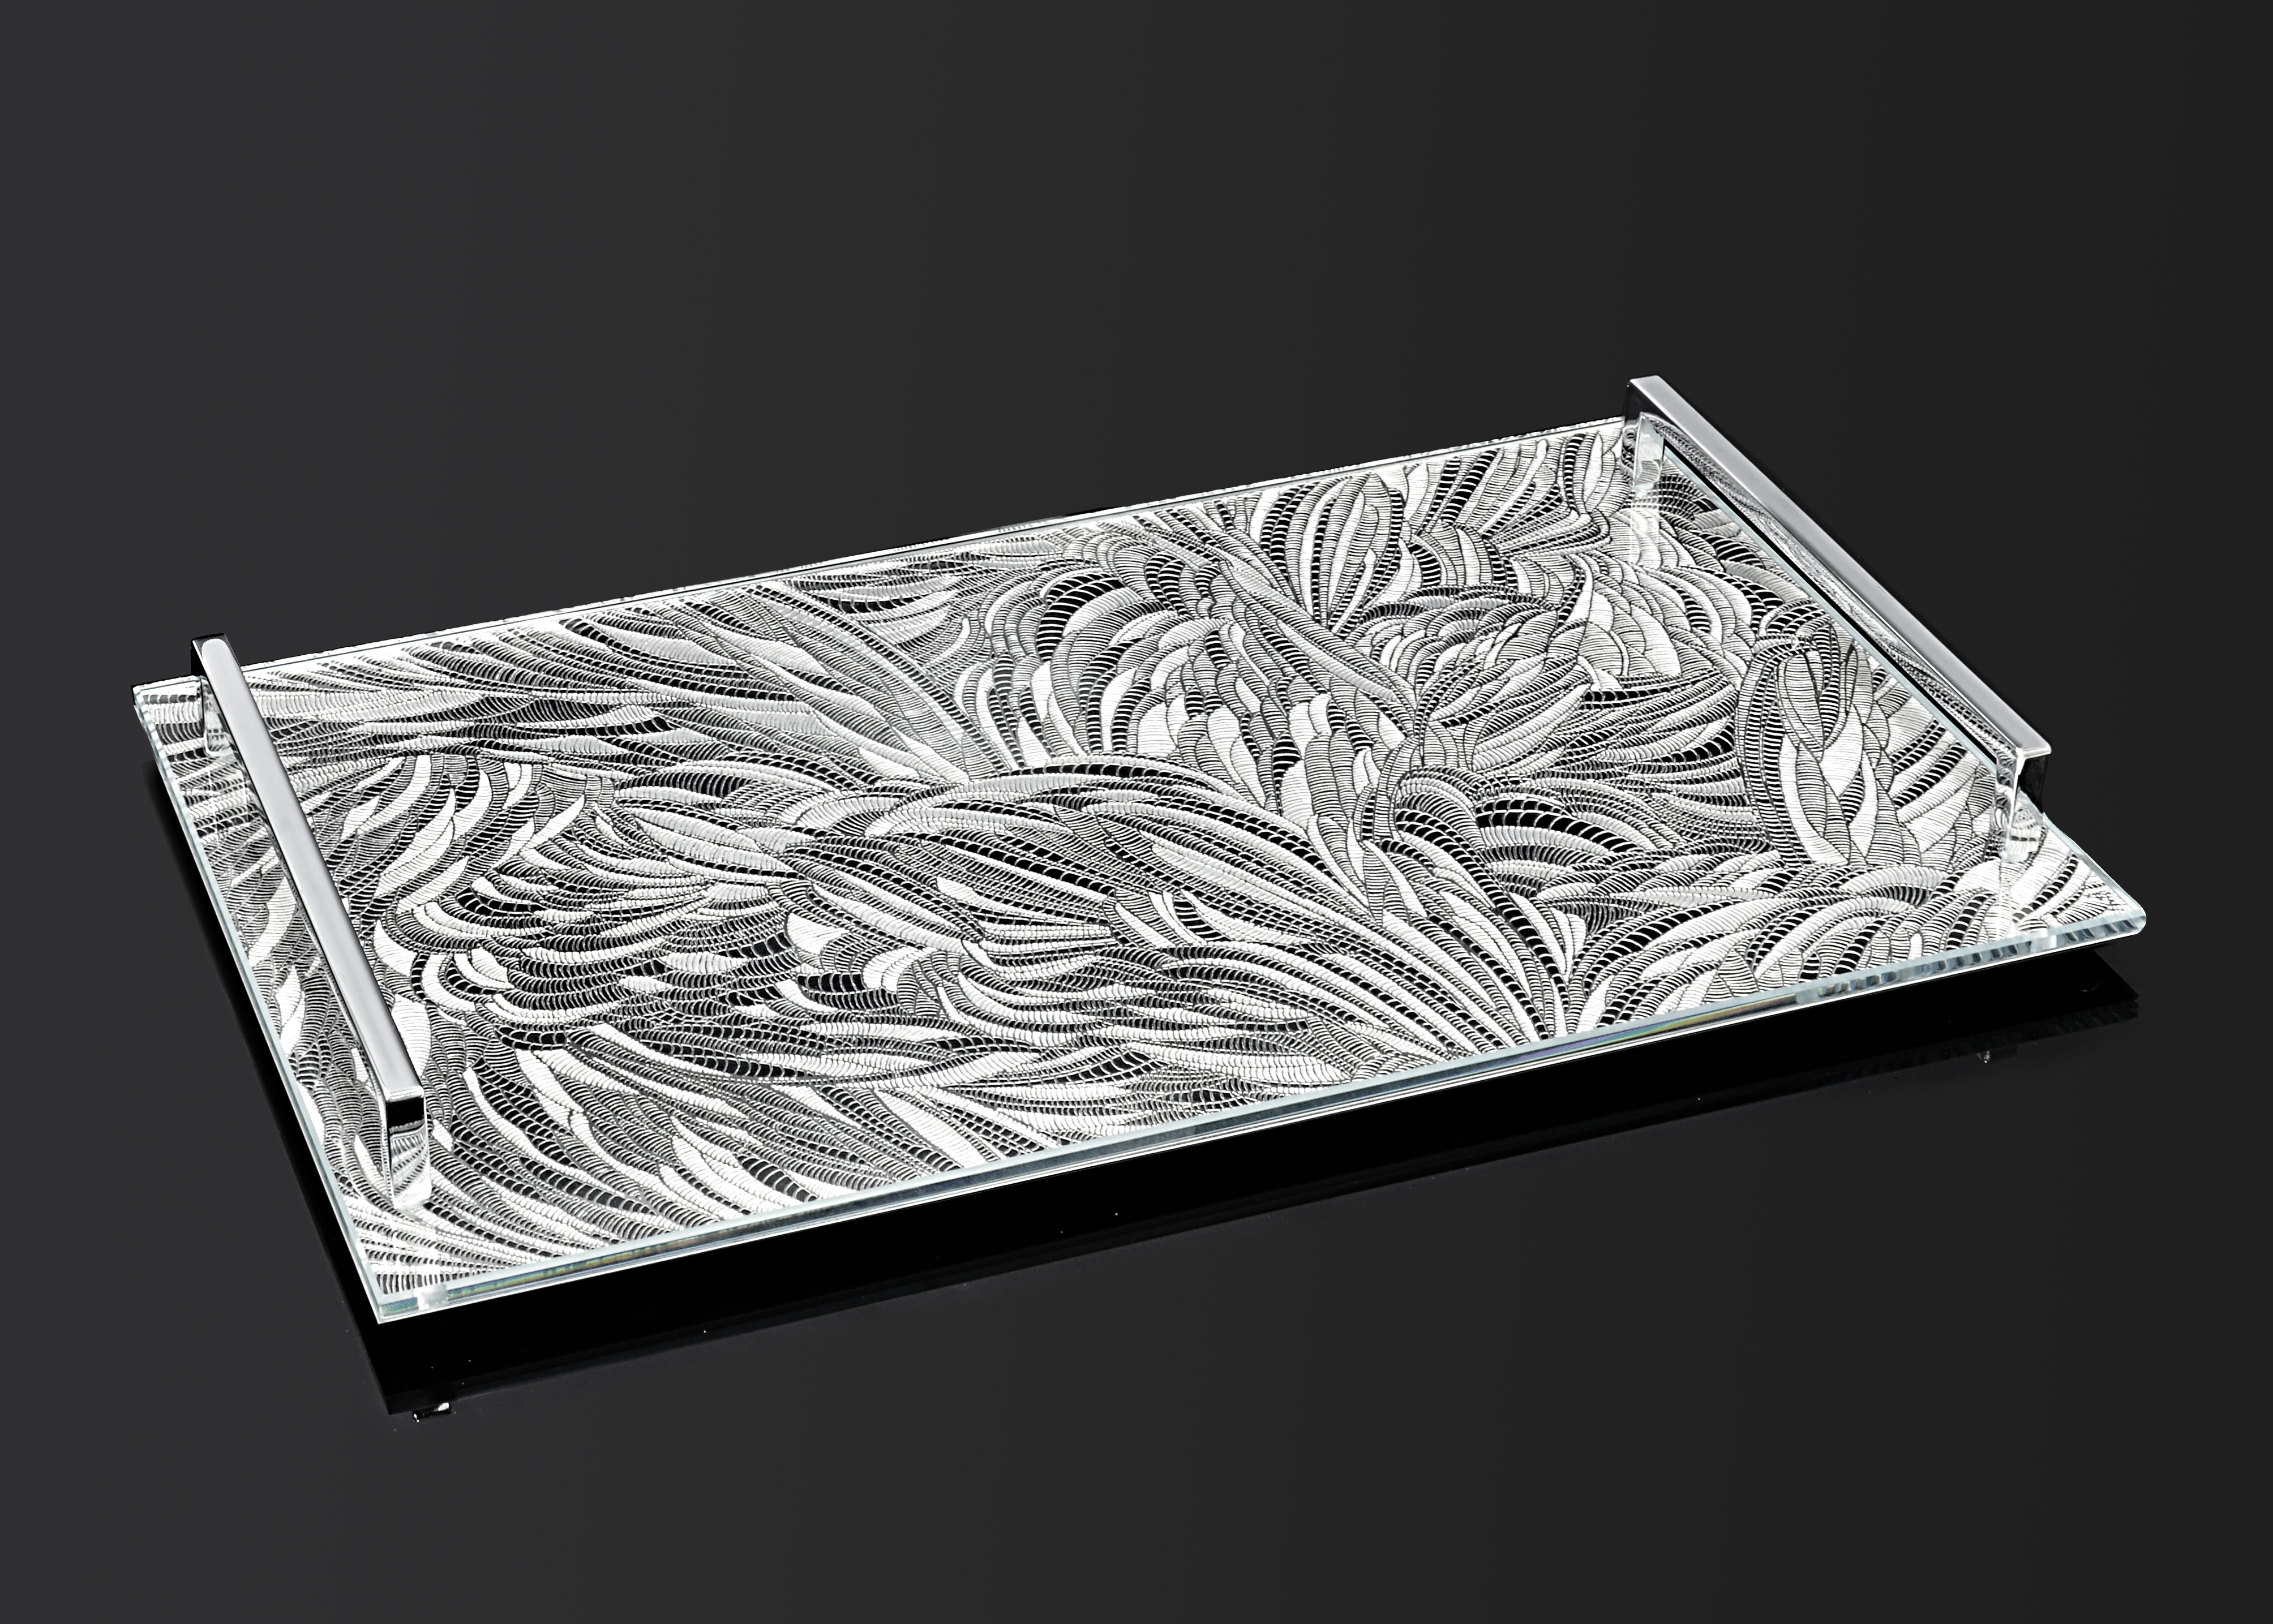 Chaos- Serving Challah Board - B by Metal Lace Art